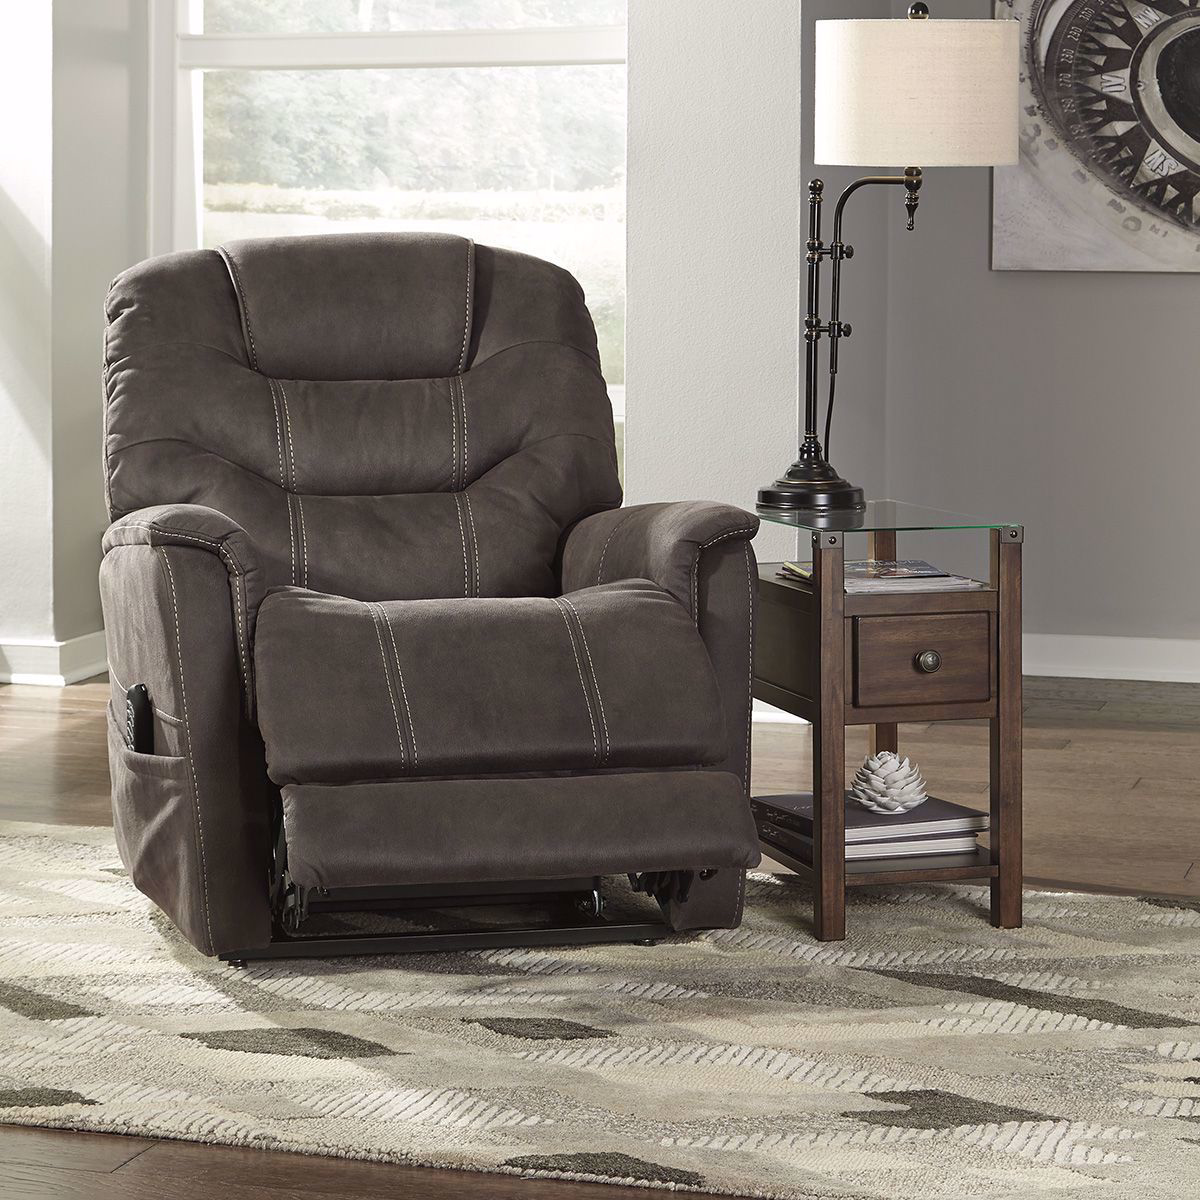 Picture of Gunmetal Power Lift Recliner